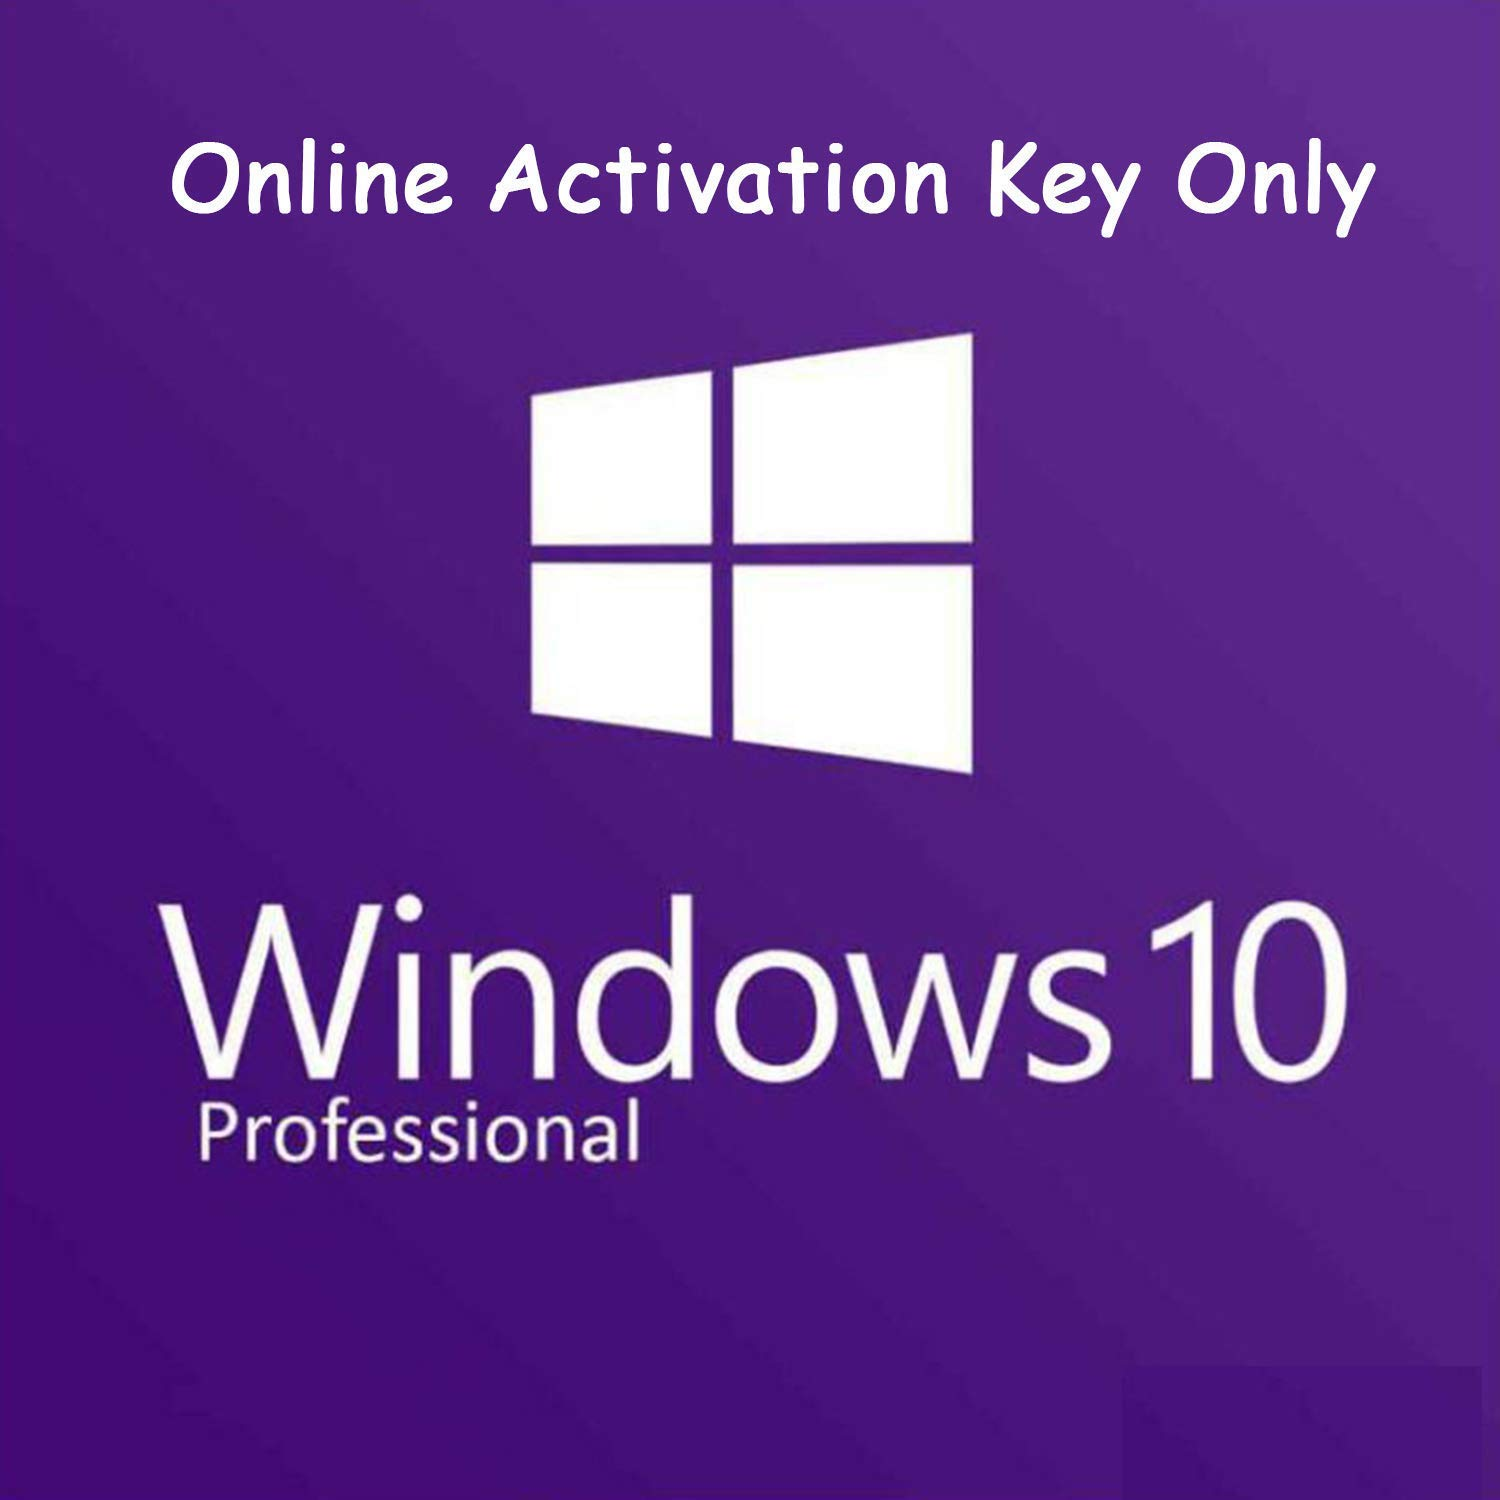 Windows 10 Professional Activation Code